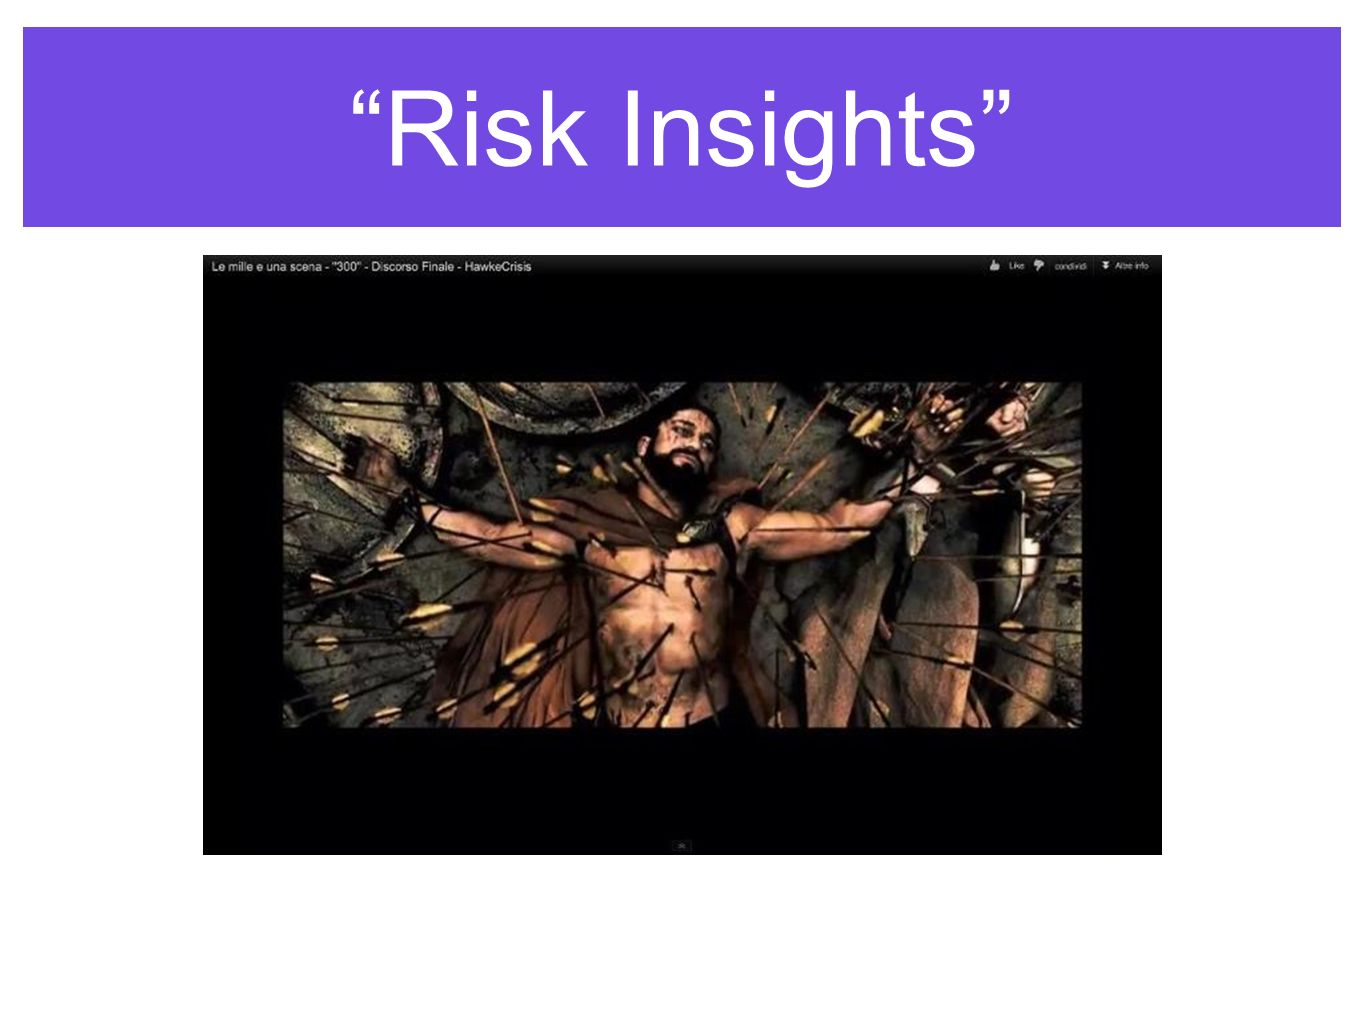 Risk Insights